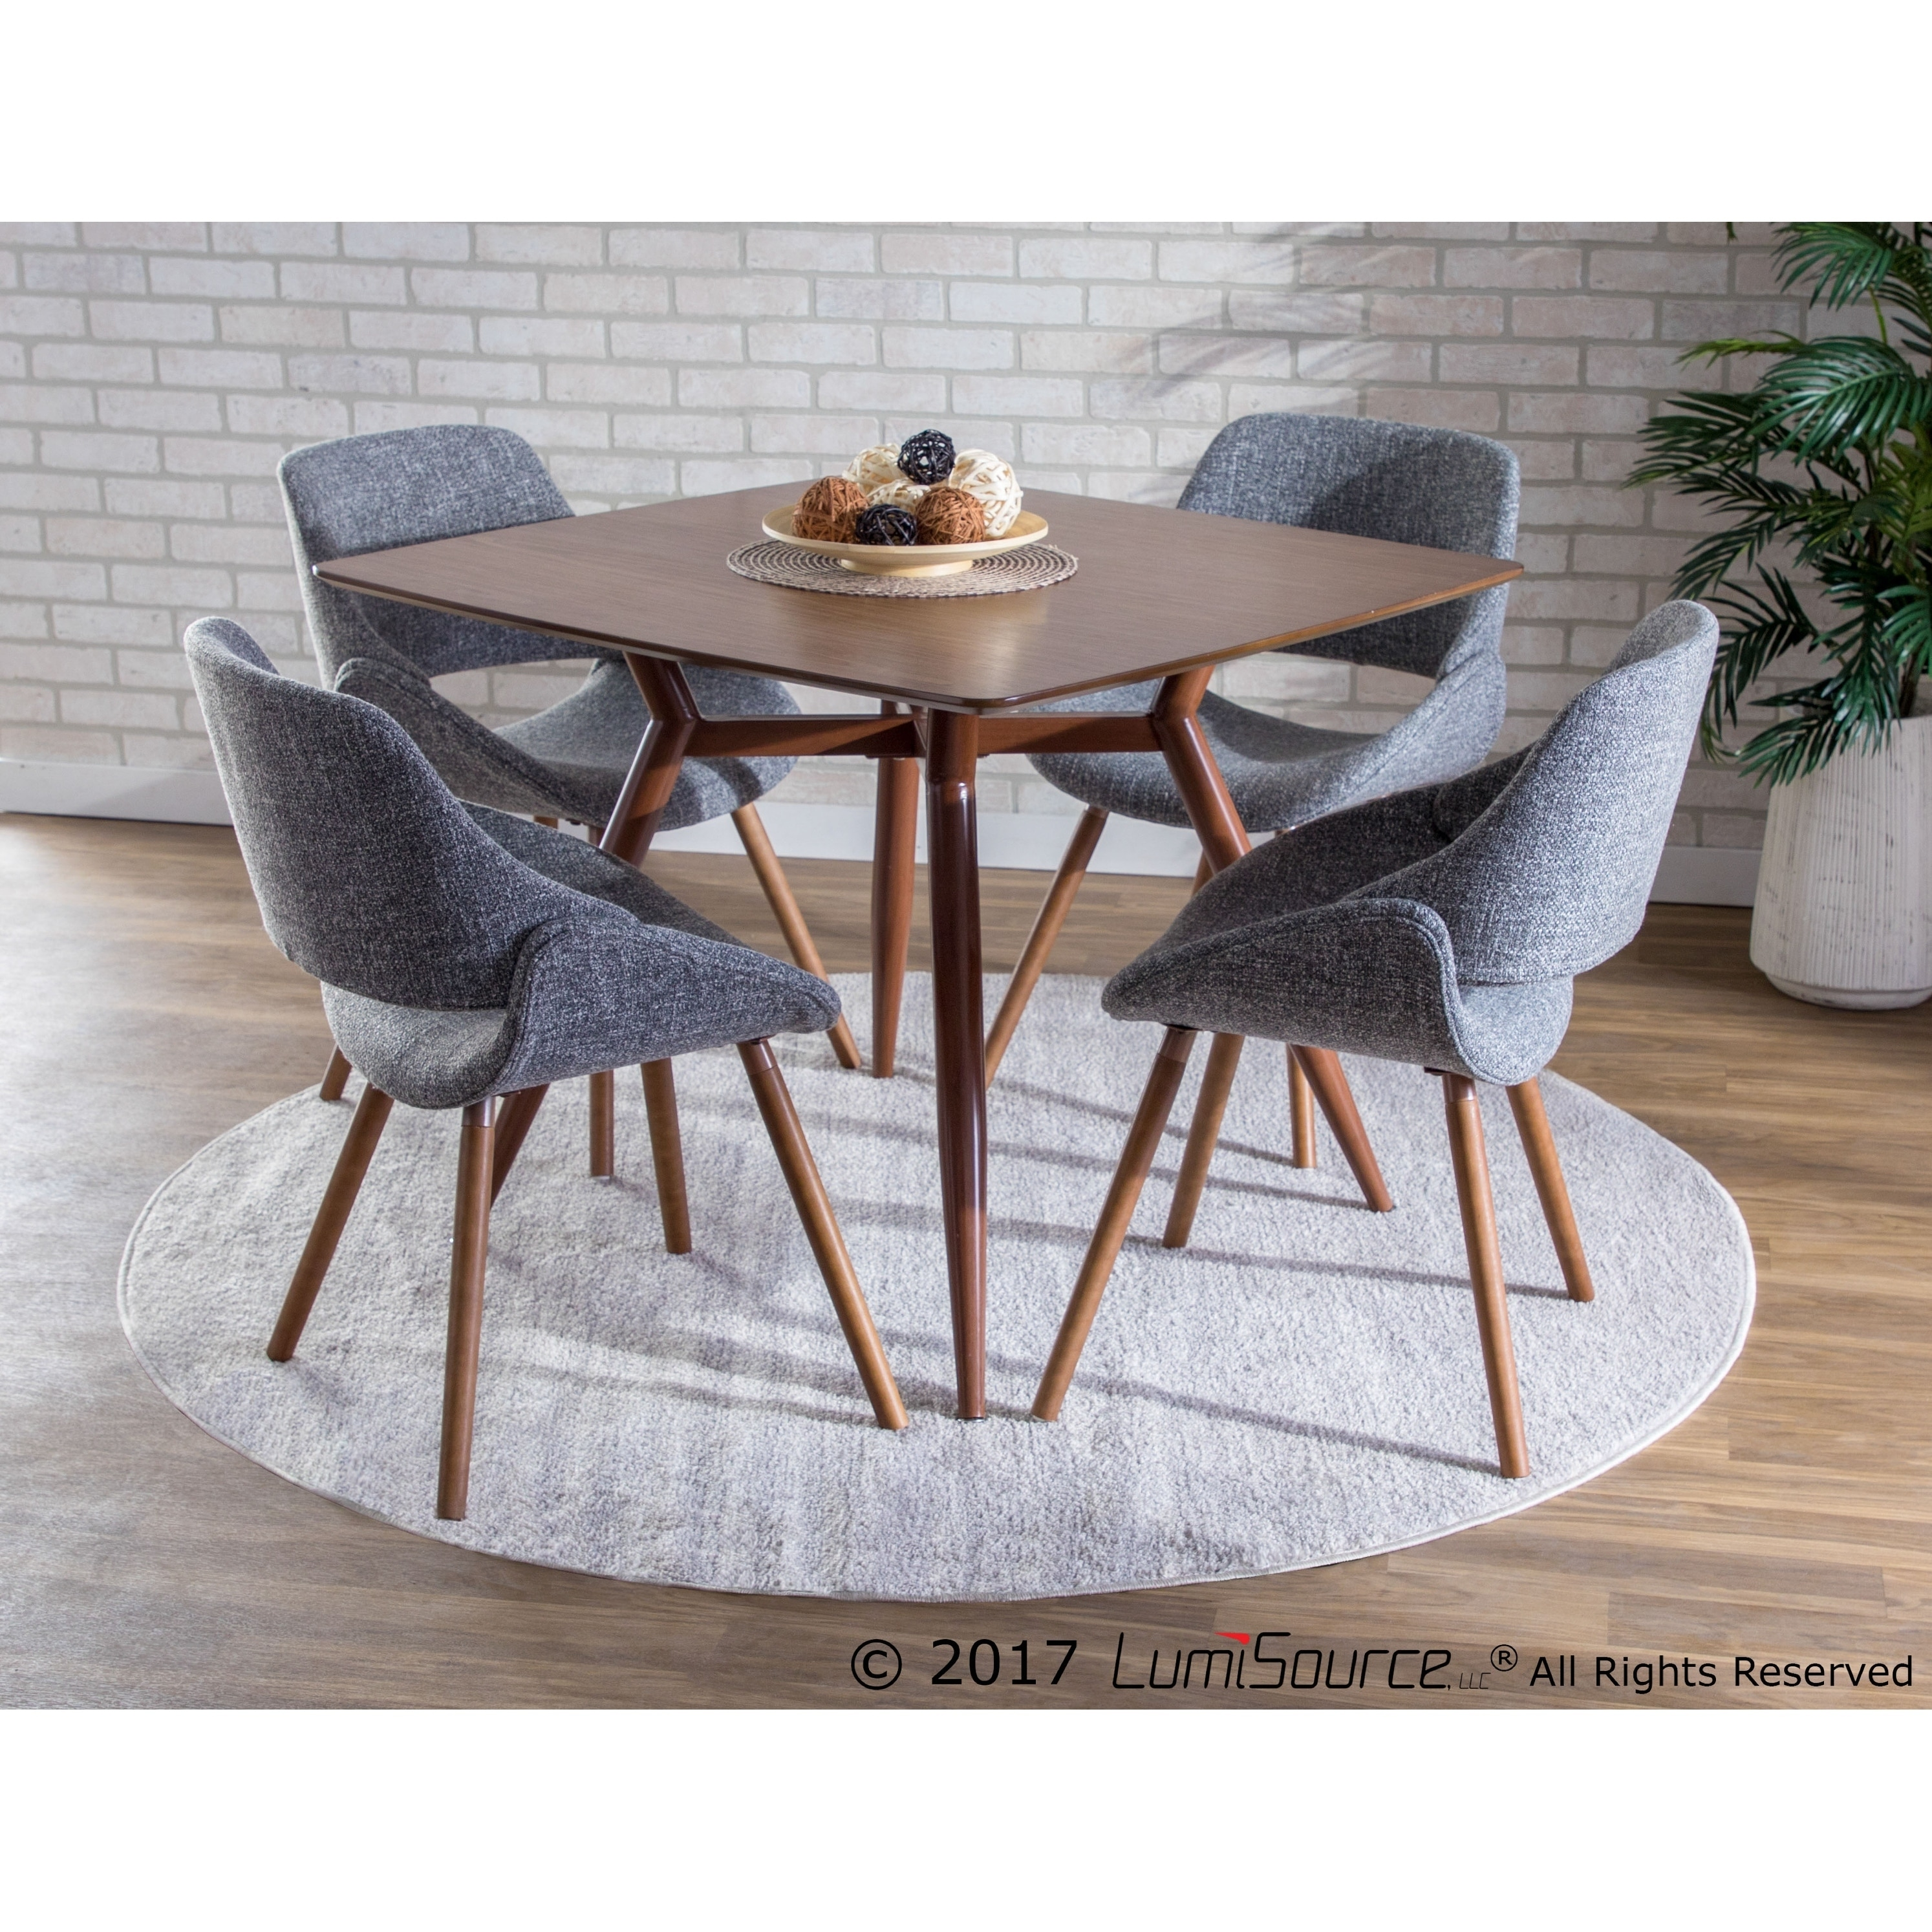 fabrico mid century modern dining accent chair set room table with chairs free shipping today outdoor coffee and porcelain vase lamp round wood metal hampton bay patio furniture